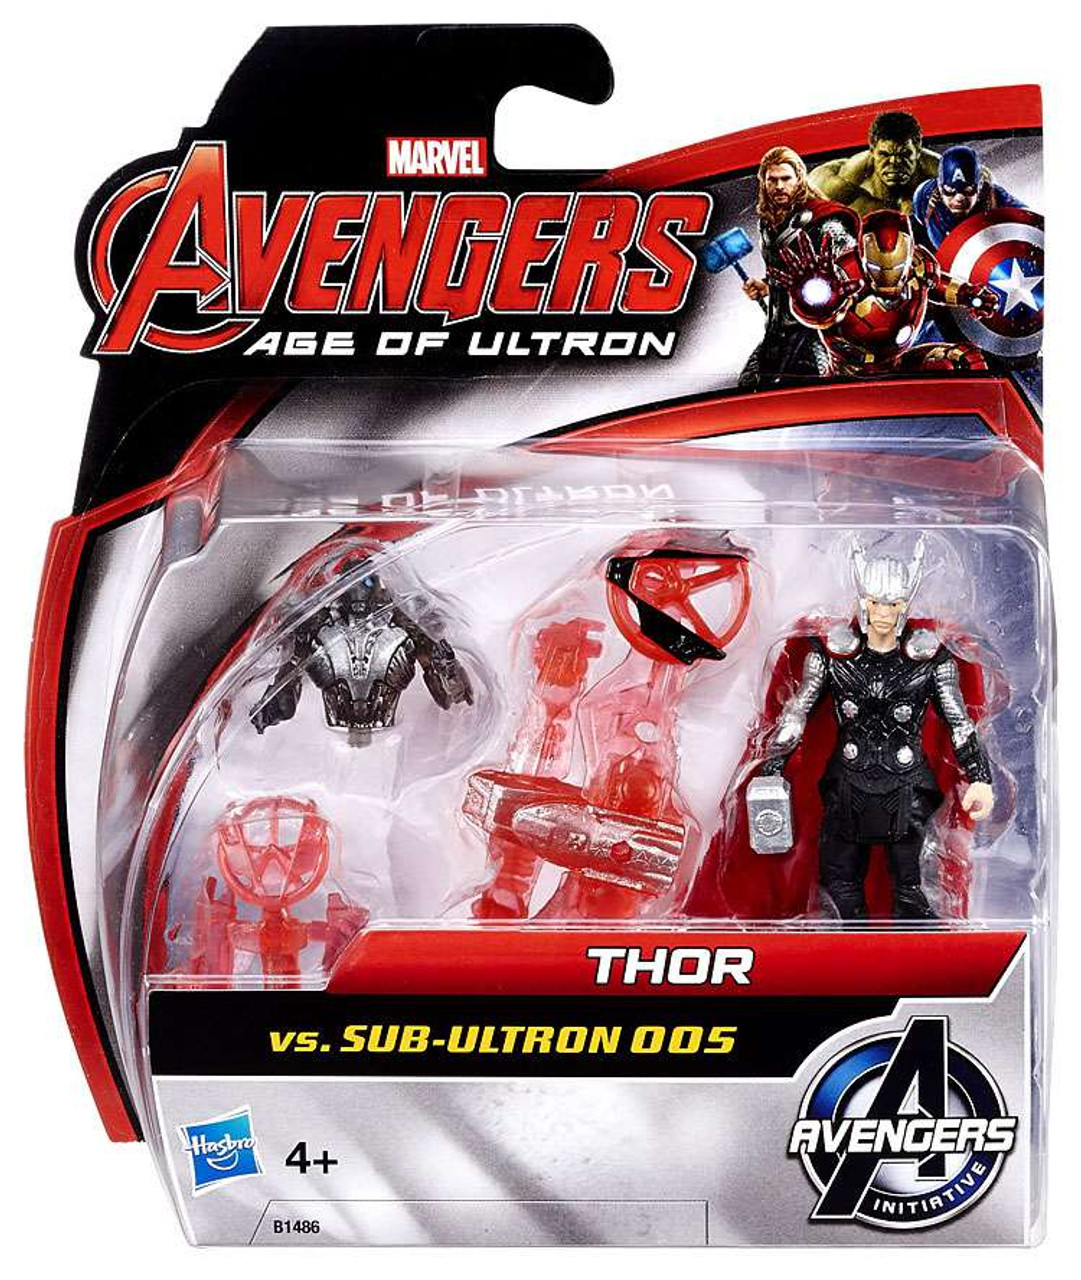 MARVEL AVENGERS AGE OF ULTRON CHOOSE YOUR 2.5' ACTION TOY FIGURE HULK THOR